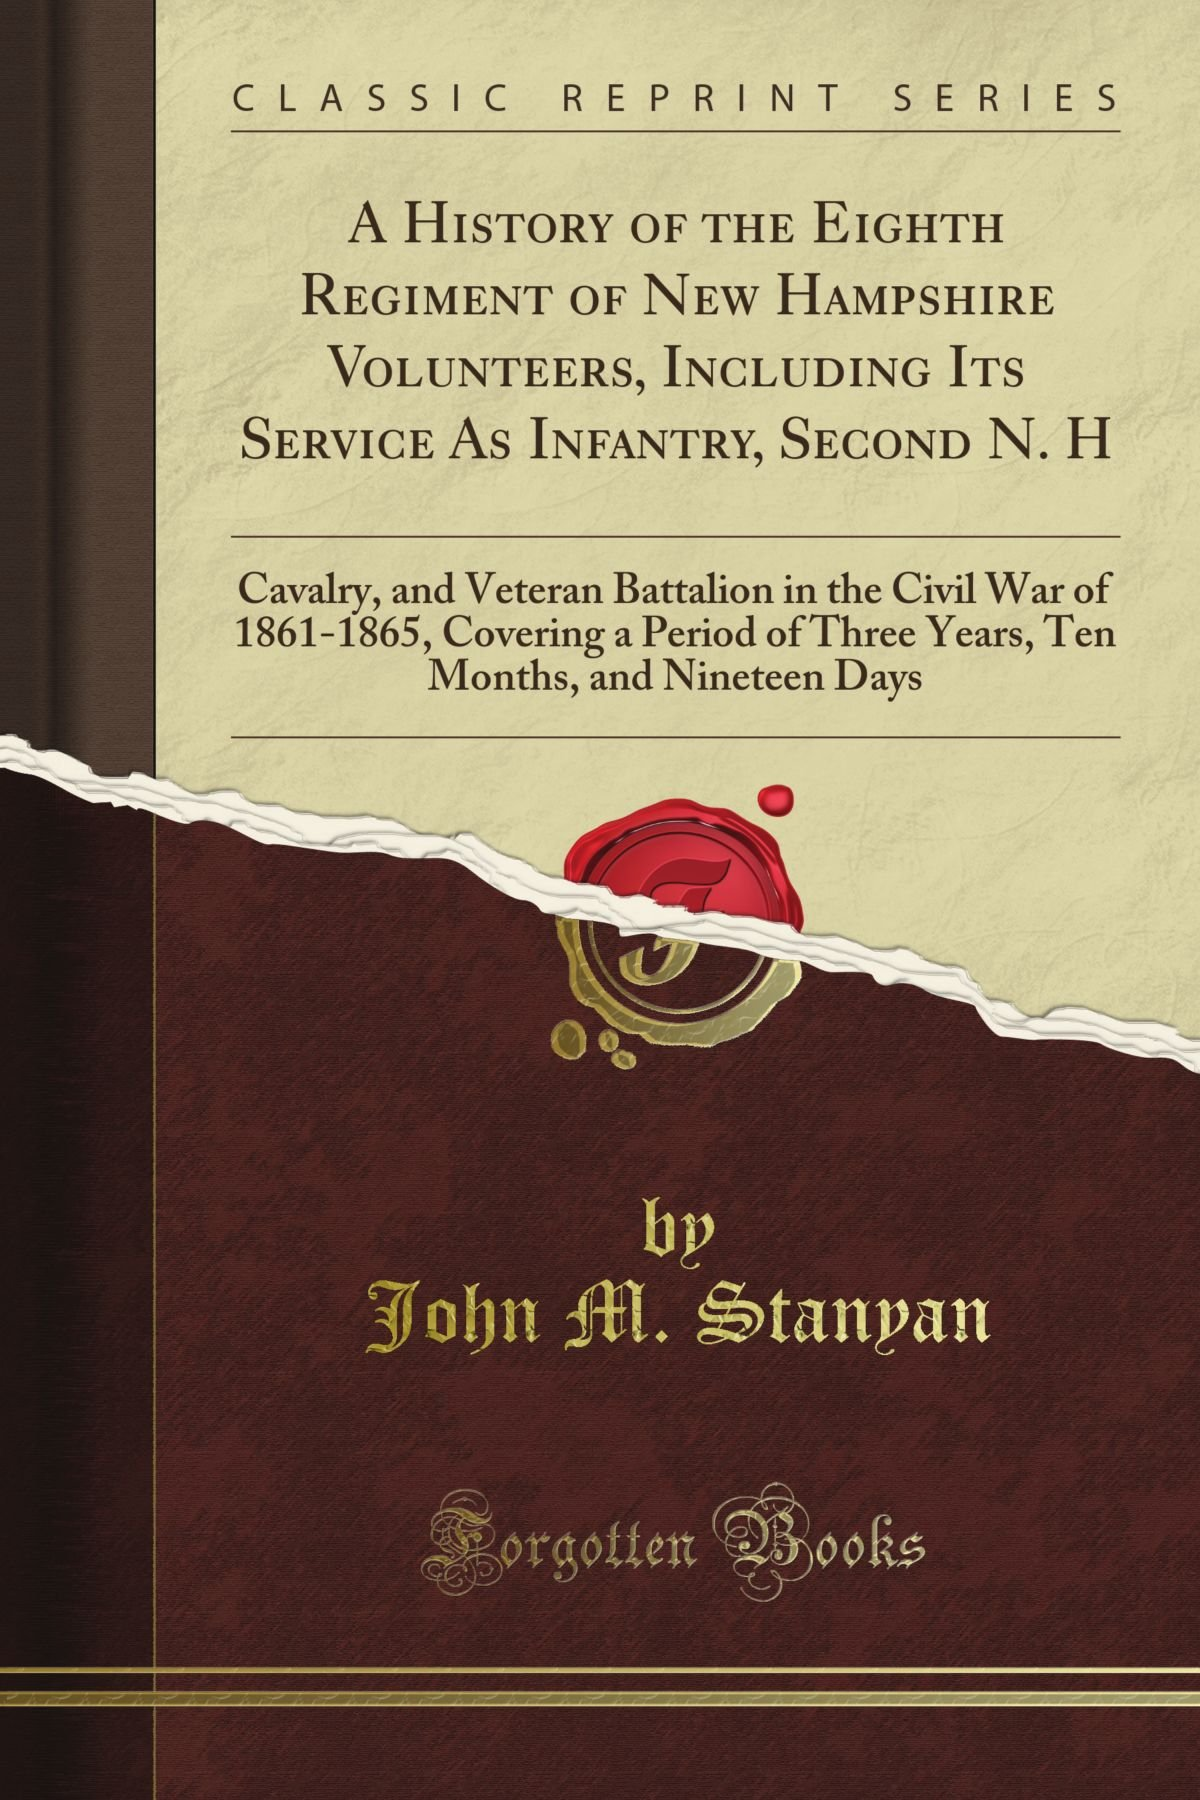 Download A History of the Eighth Regiment of New Hampshire Volunteers, Including Its Service As Infantry, Second N. H: Cavalry, and Veteran Battalion in the ... Months, and Nineteen Days (Classic Reprint) PDF